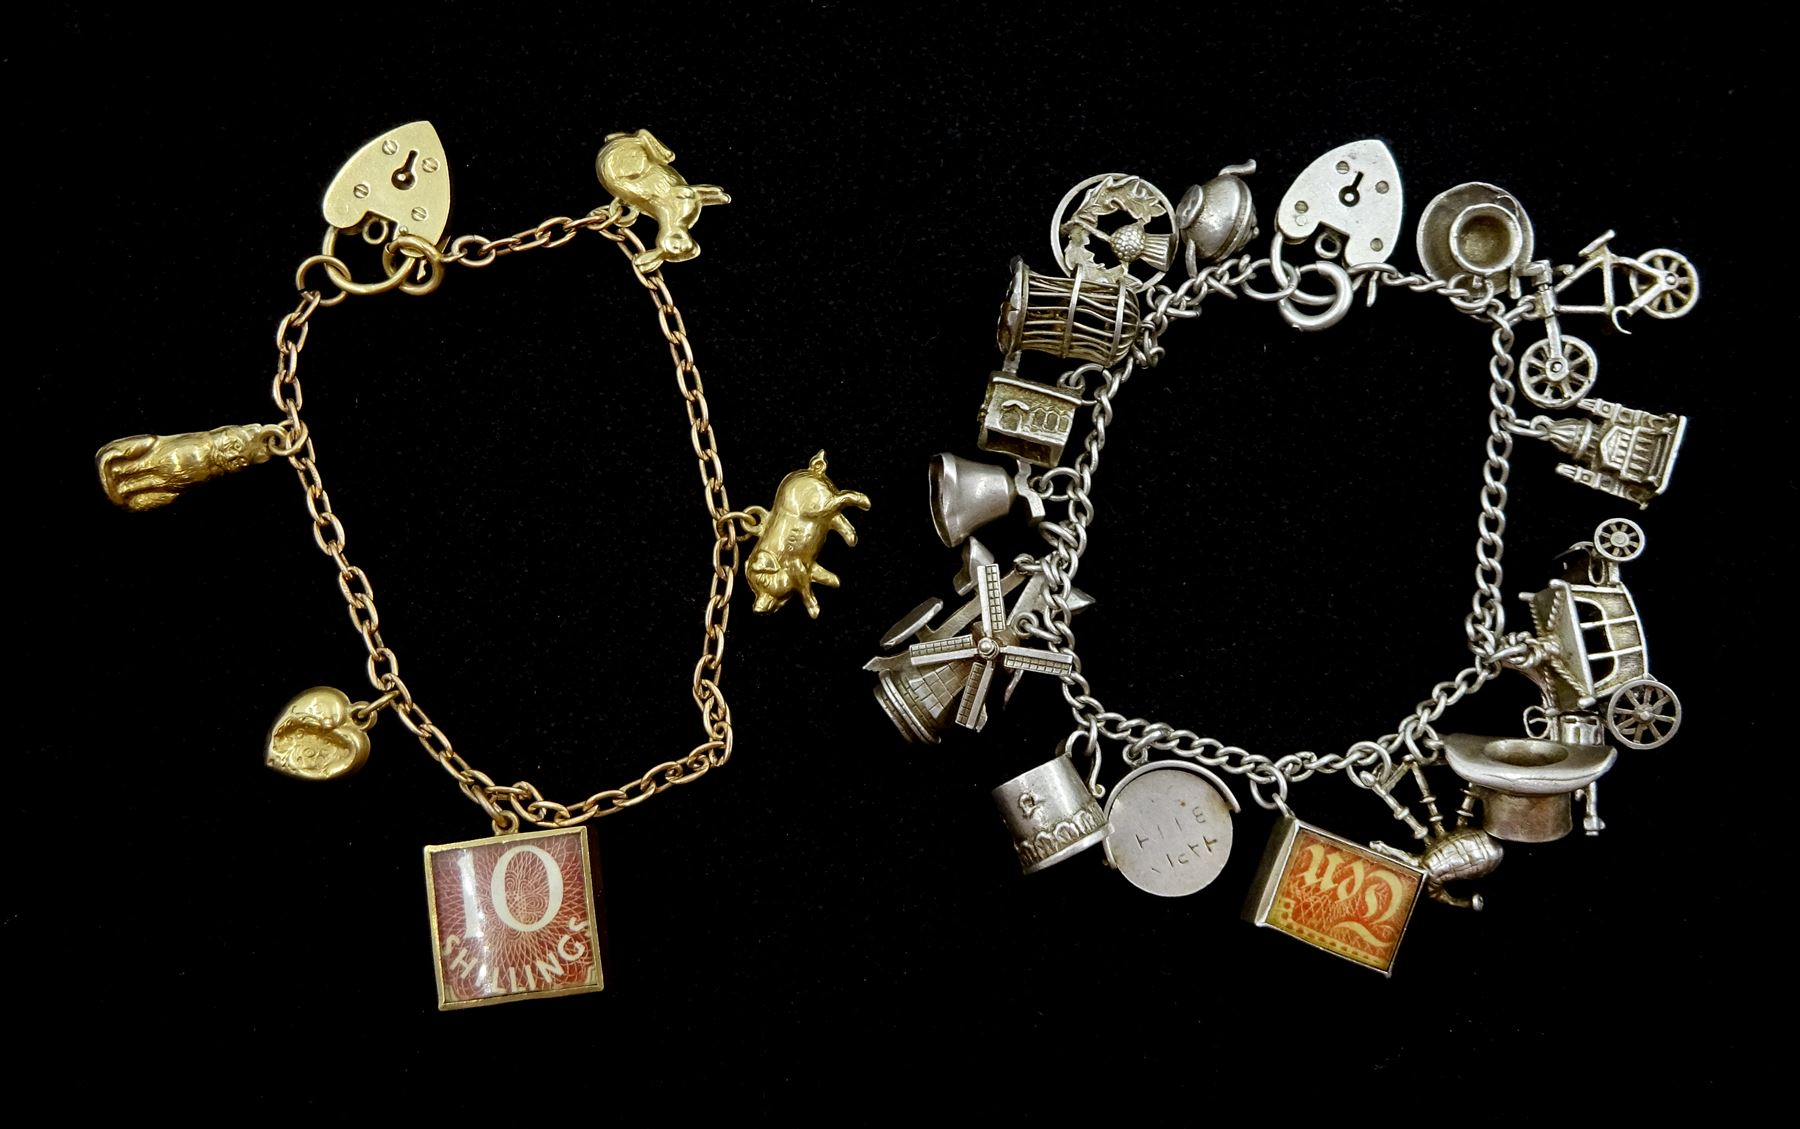 Gold link bracelet with five charms including money box